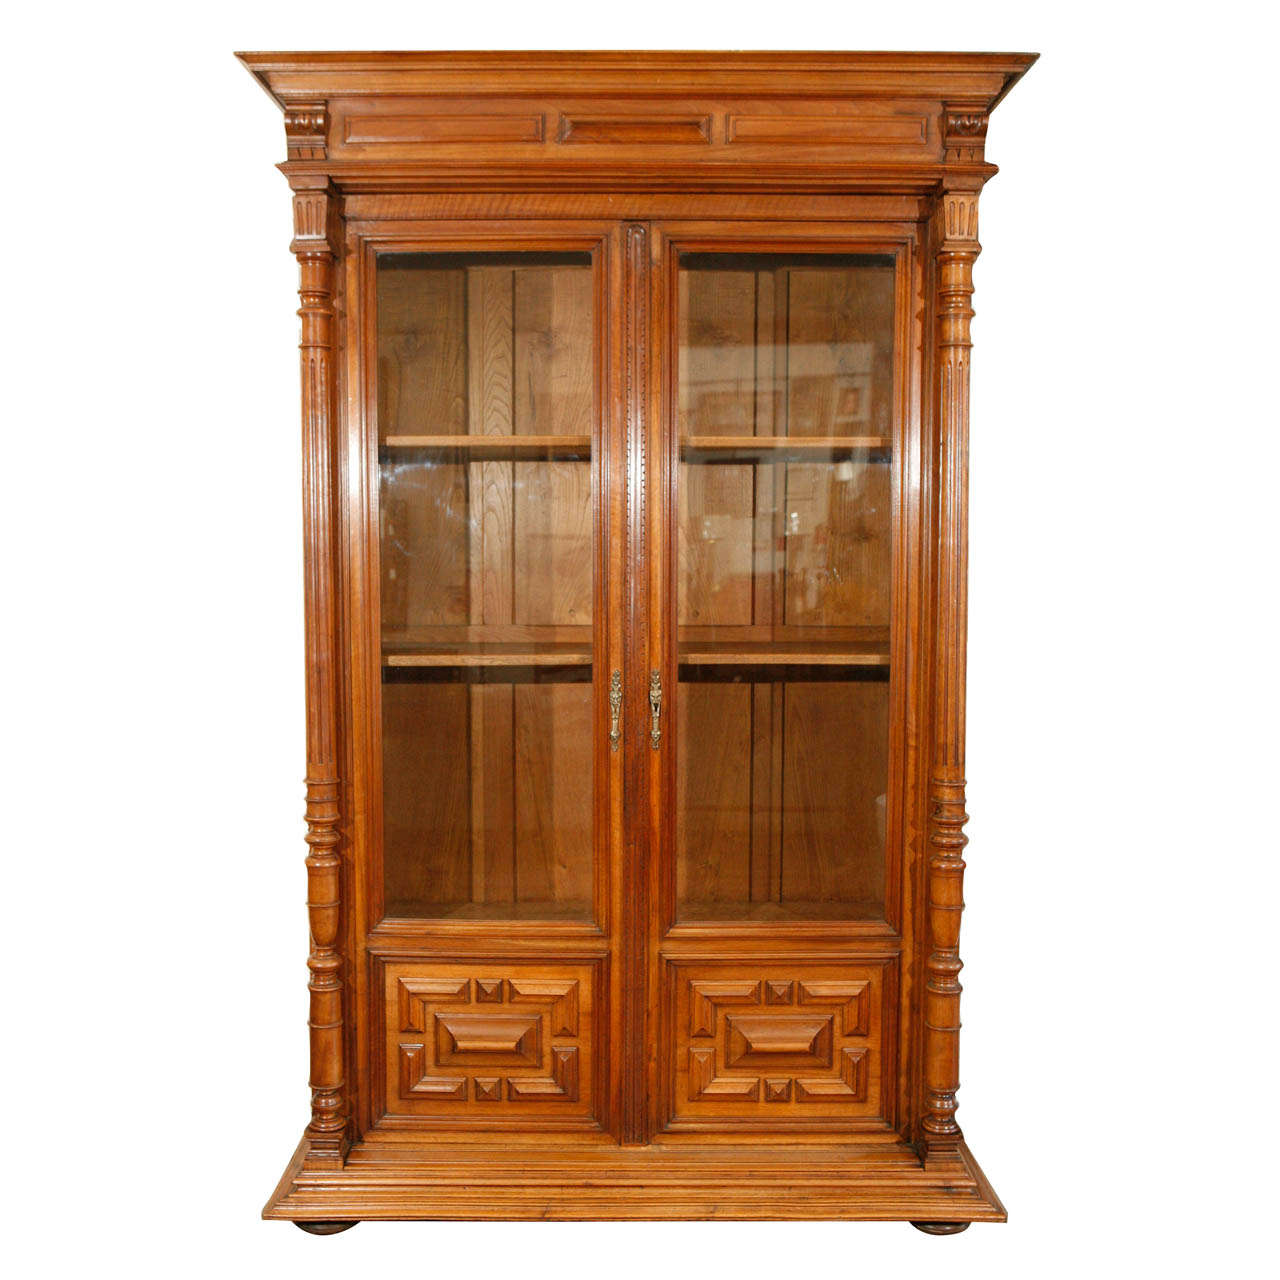 19th c. French Bibliothèque-Bookcase